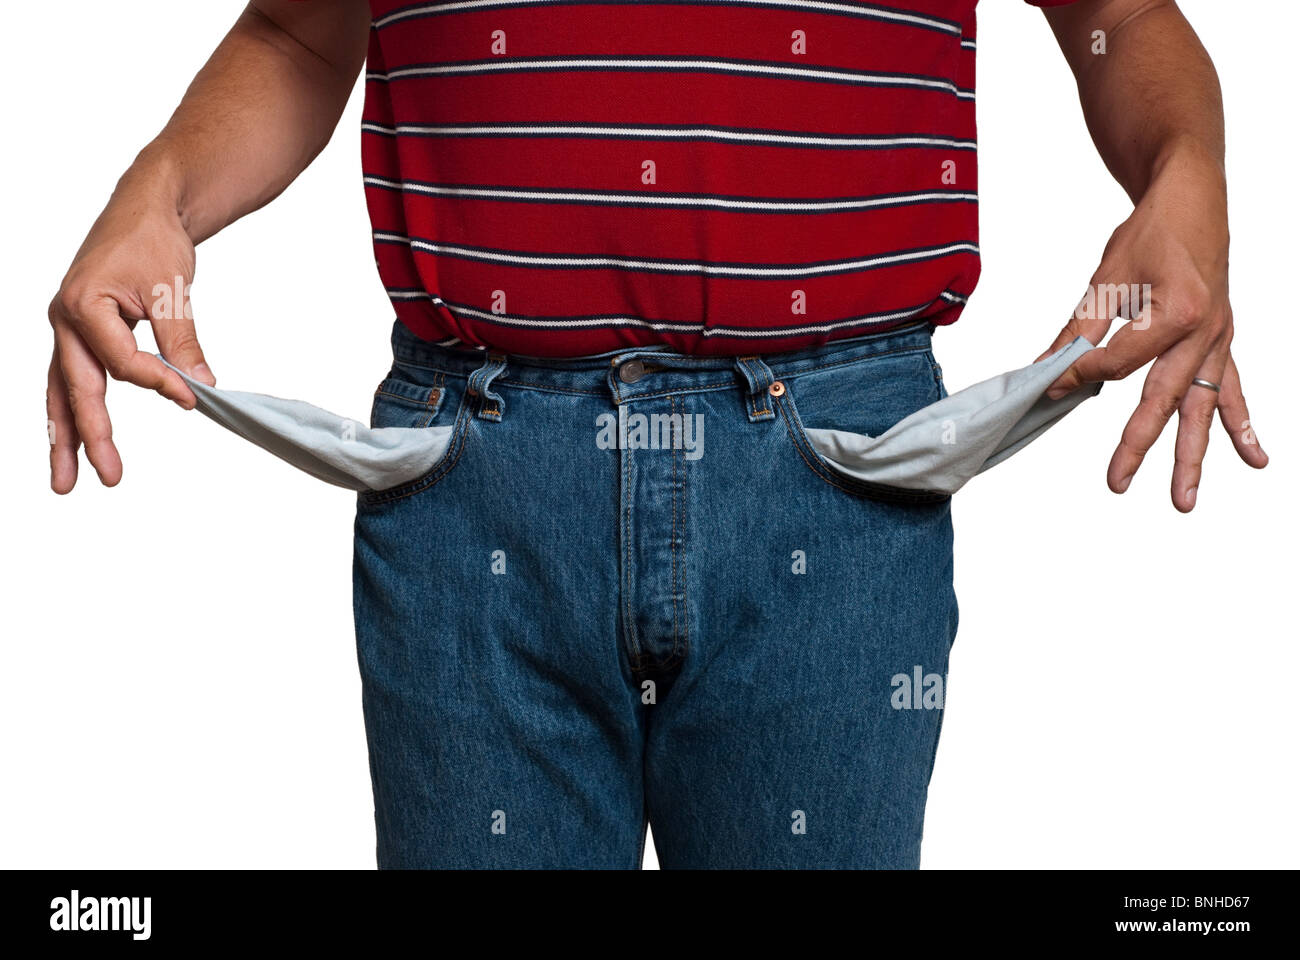 man in jeans, turning his pockets inside out to show he is poor. Isolated on white, saved with clipping path - Stock Image